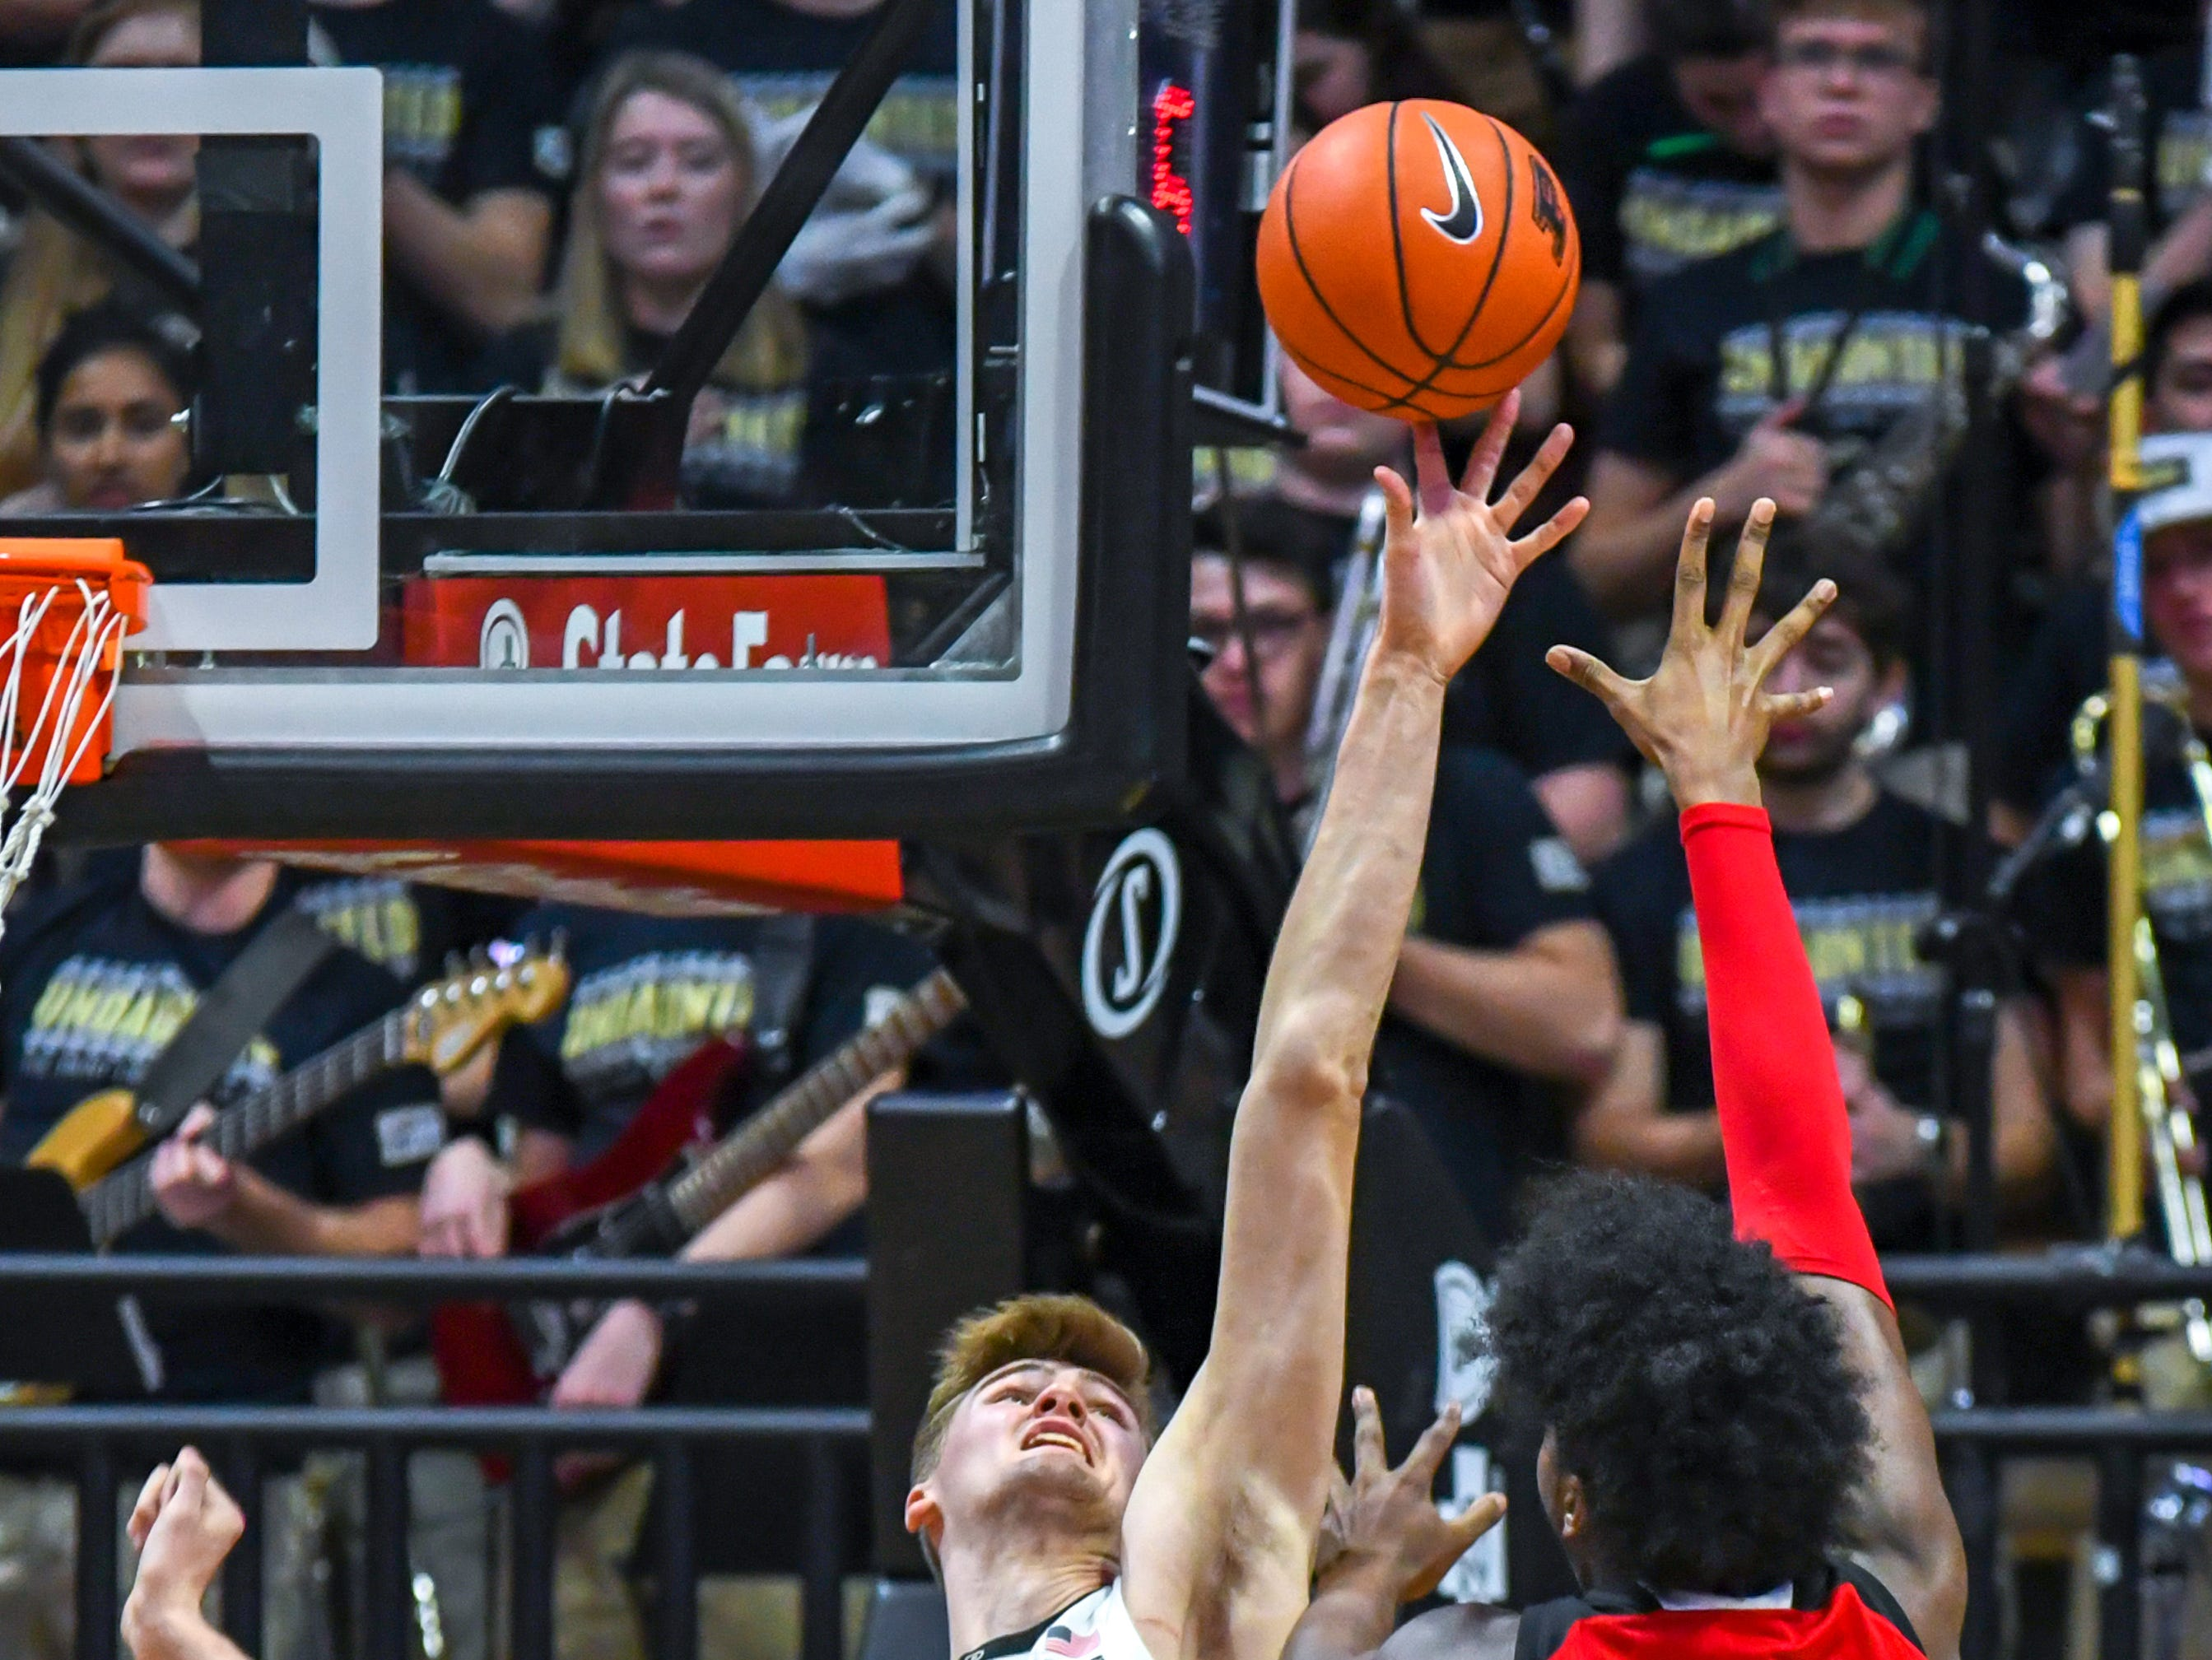 Action from Purdue's 89-54 win over Rutgers at Purdue University in West Lafayette on January 15, 2019. Matt Haarms